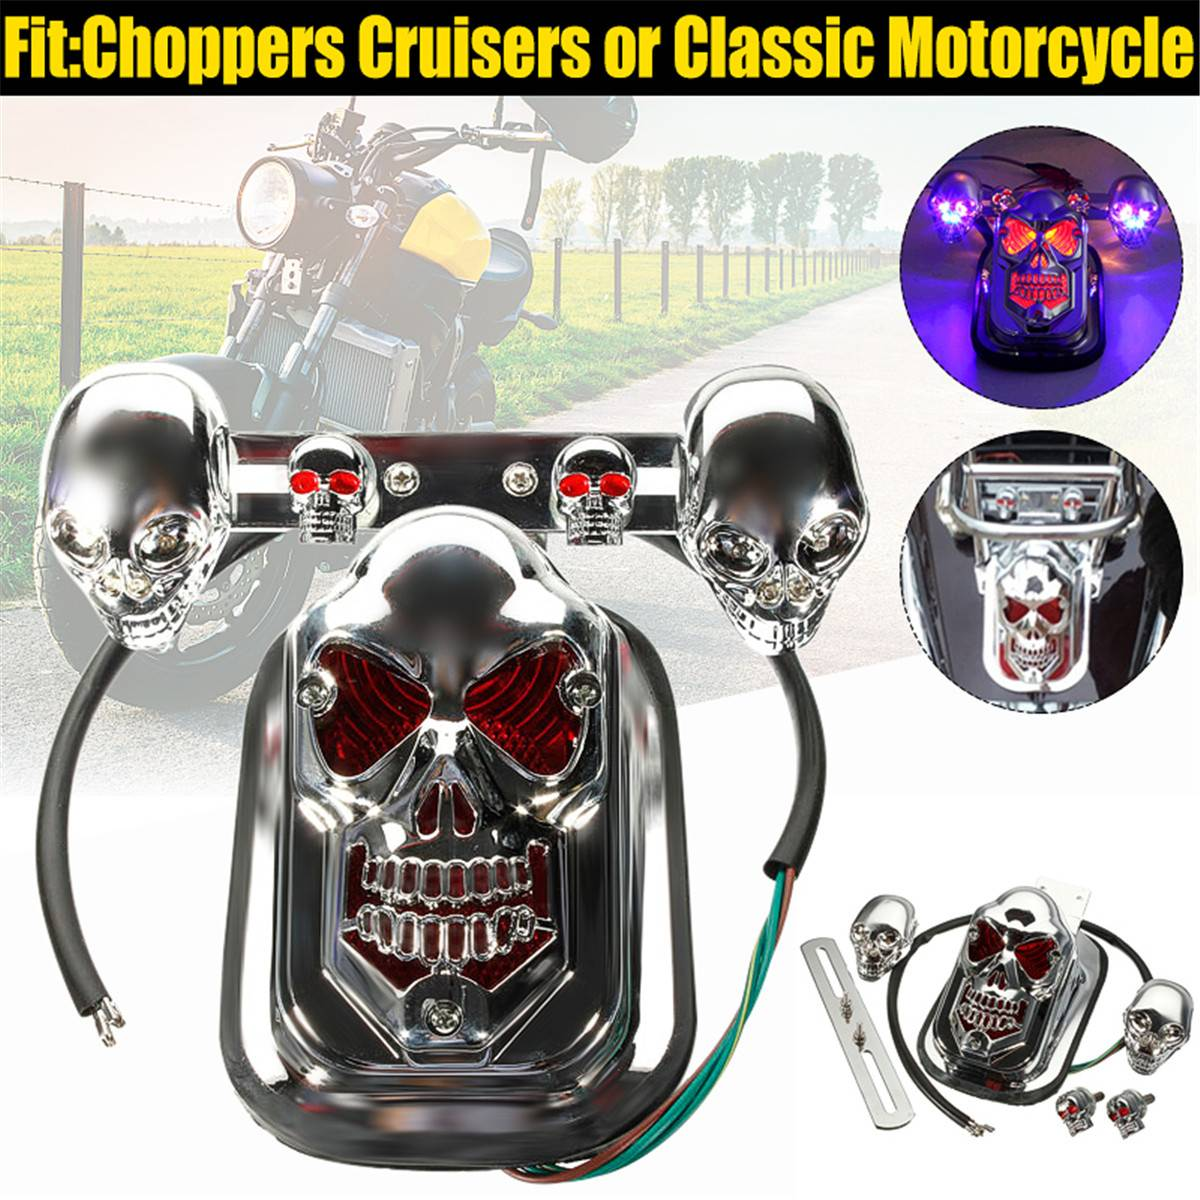 20W LED Motorcycle Skull Turn Signal Lights Indicators ATV Rear /Tail / Stop / Brake Light Lamp For Choppers Cruisers